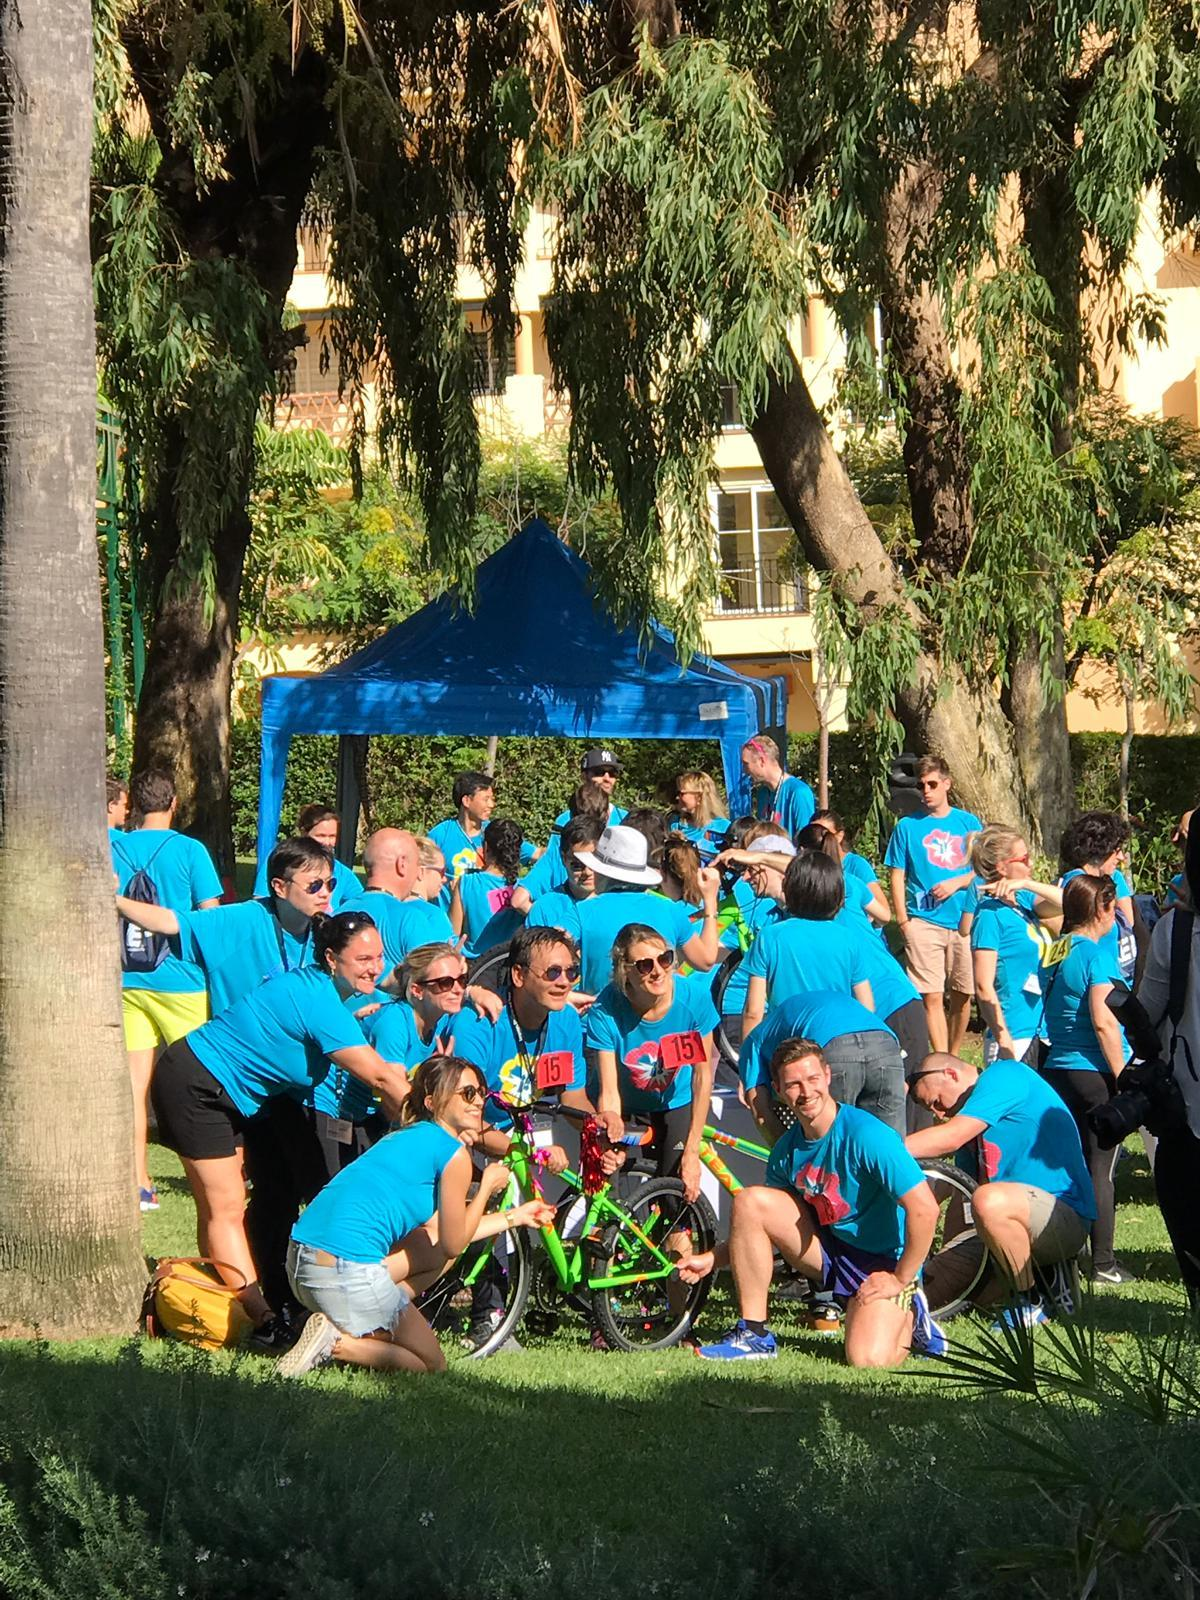 CHARITY BIKE BUILD Marbella Teams construct the ultimate human-powered child's bike 06 | Team4you